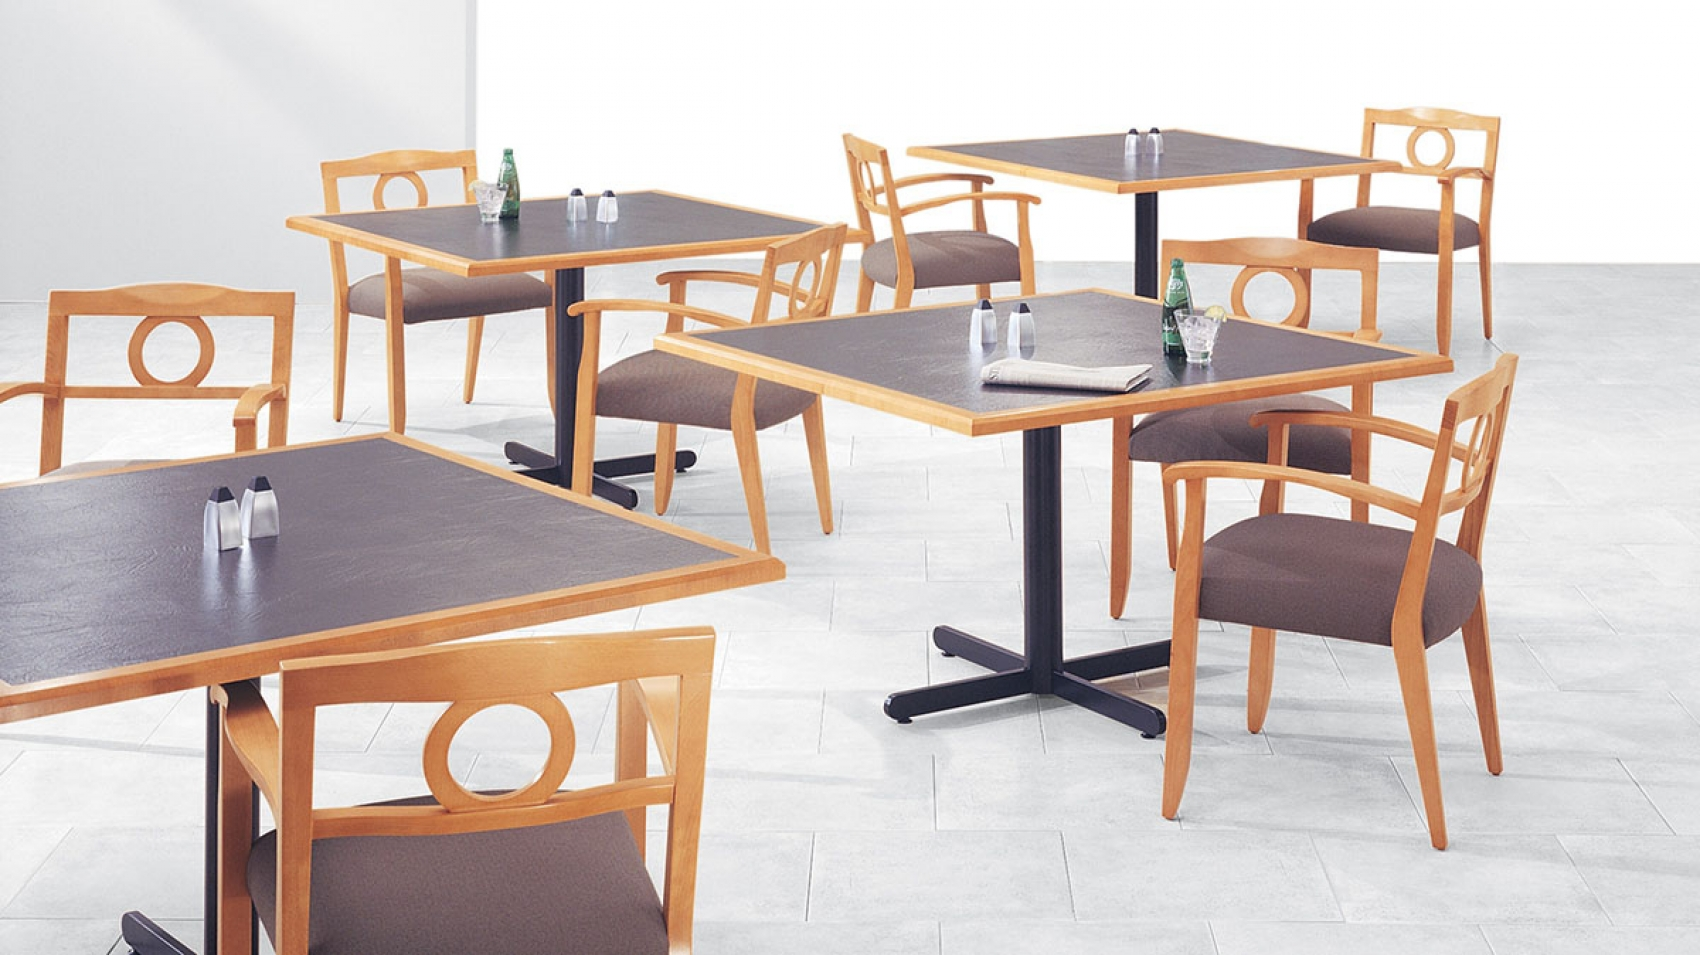 Break Room Chairs and Tables